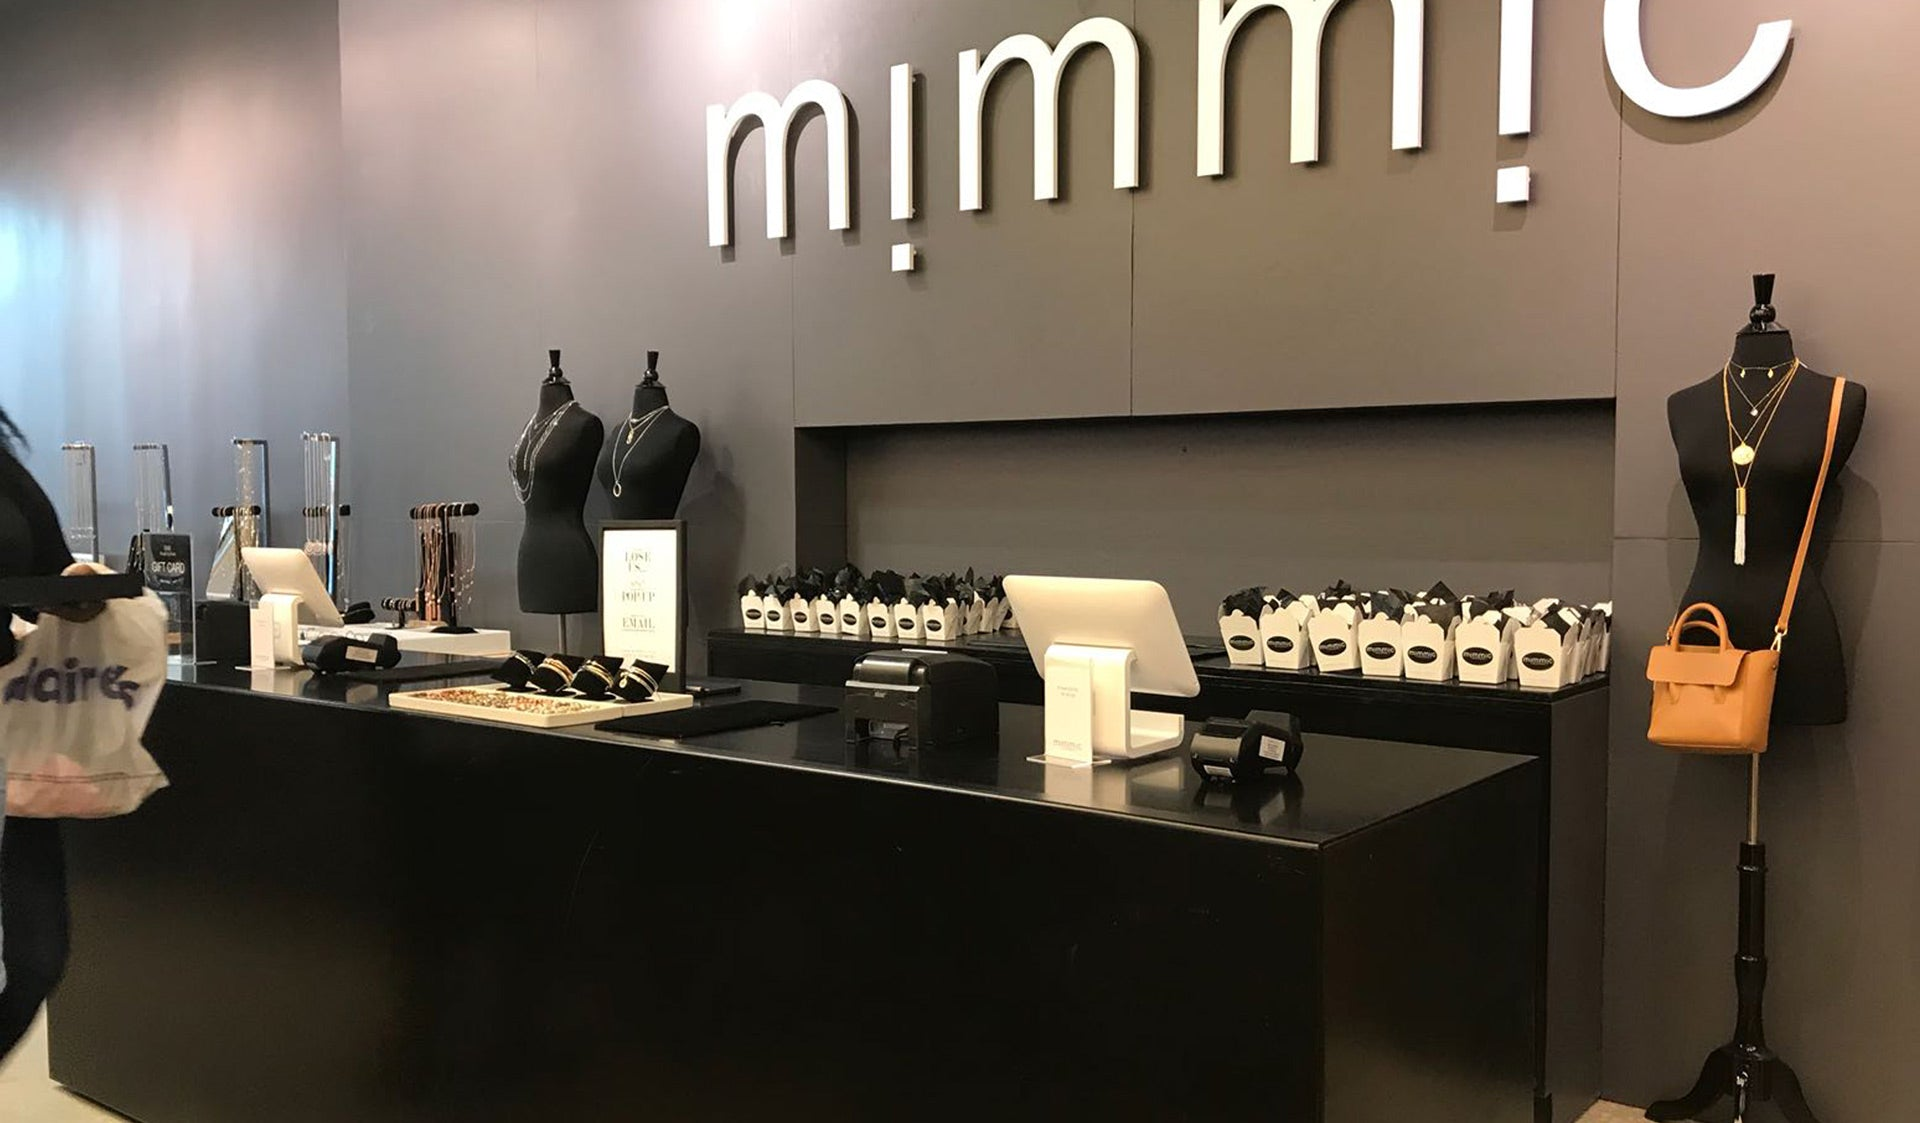 Register counter of Mimmic physical store location, with two ipad registers, and pre-made Mimmic takeout boxes in the background.